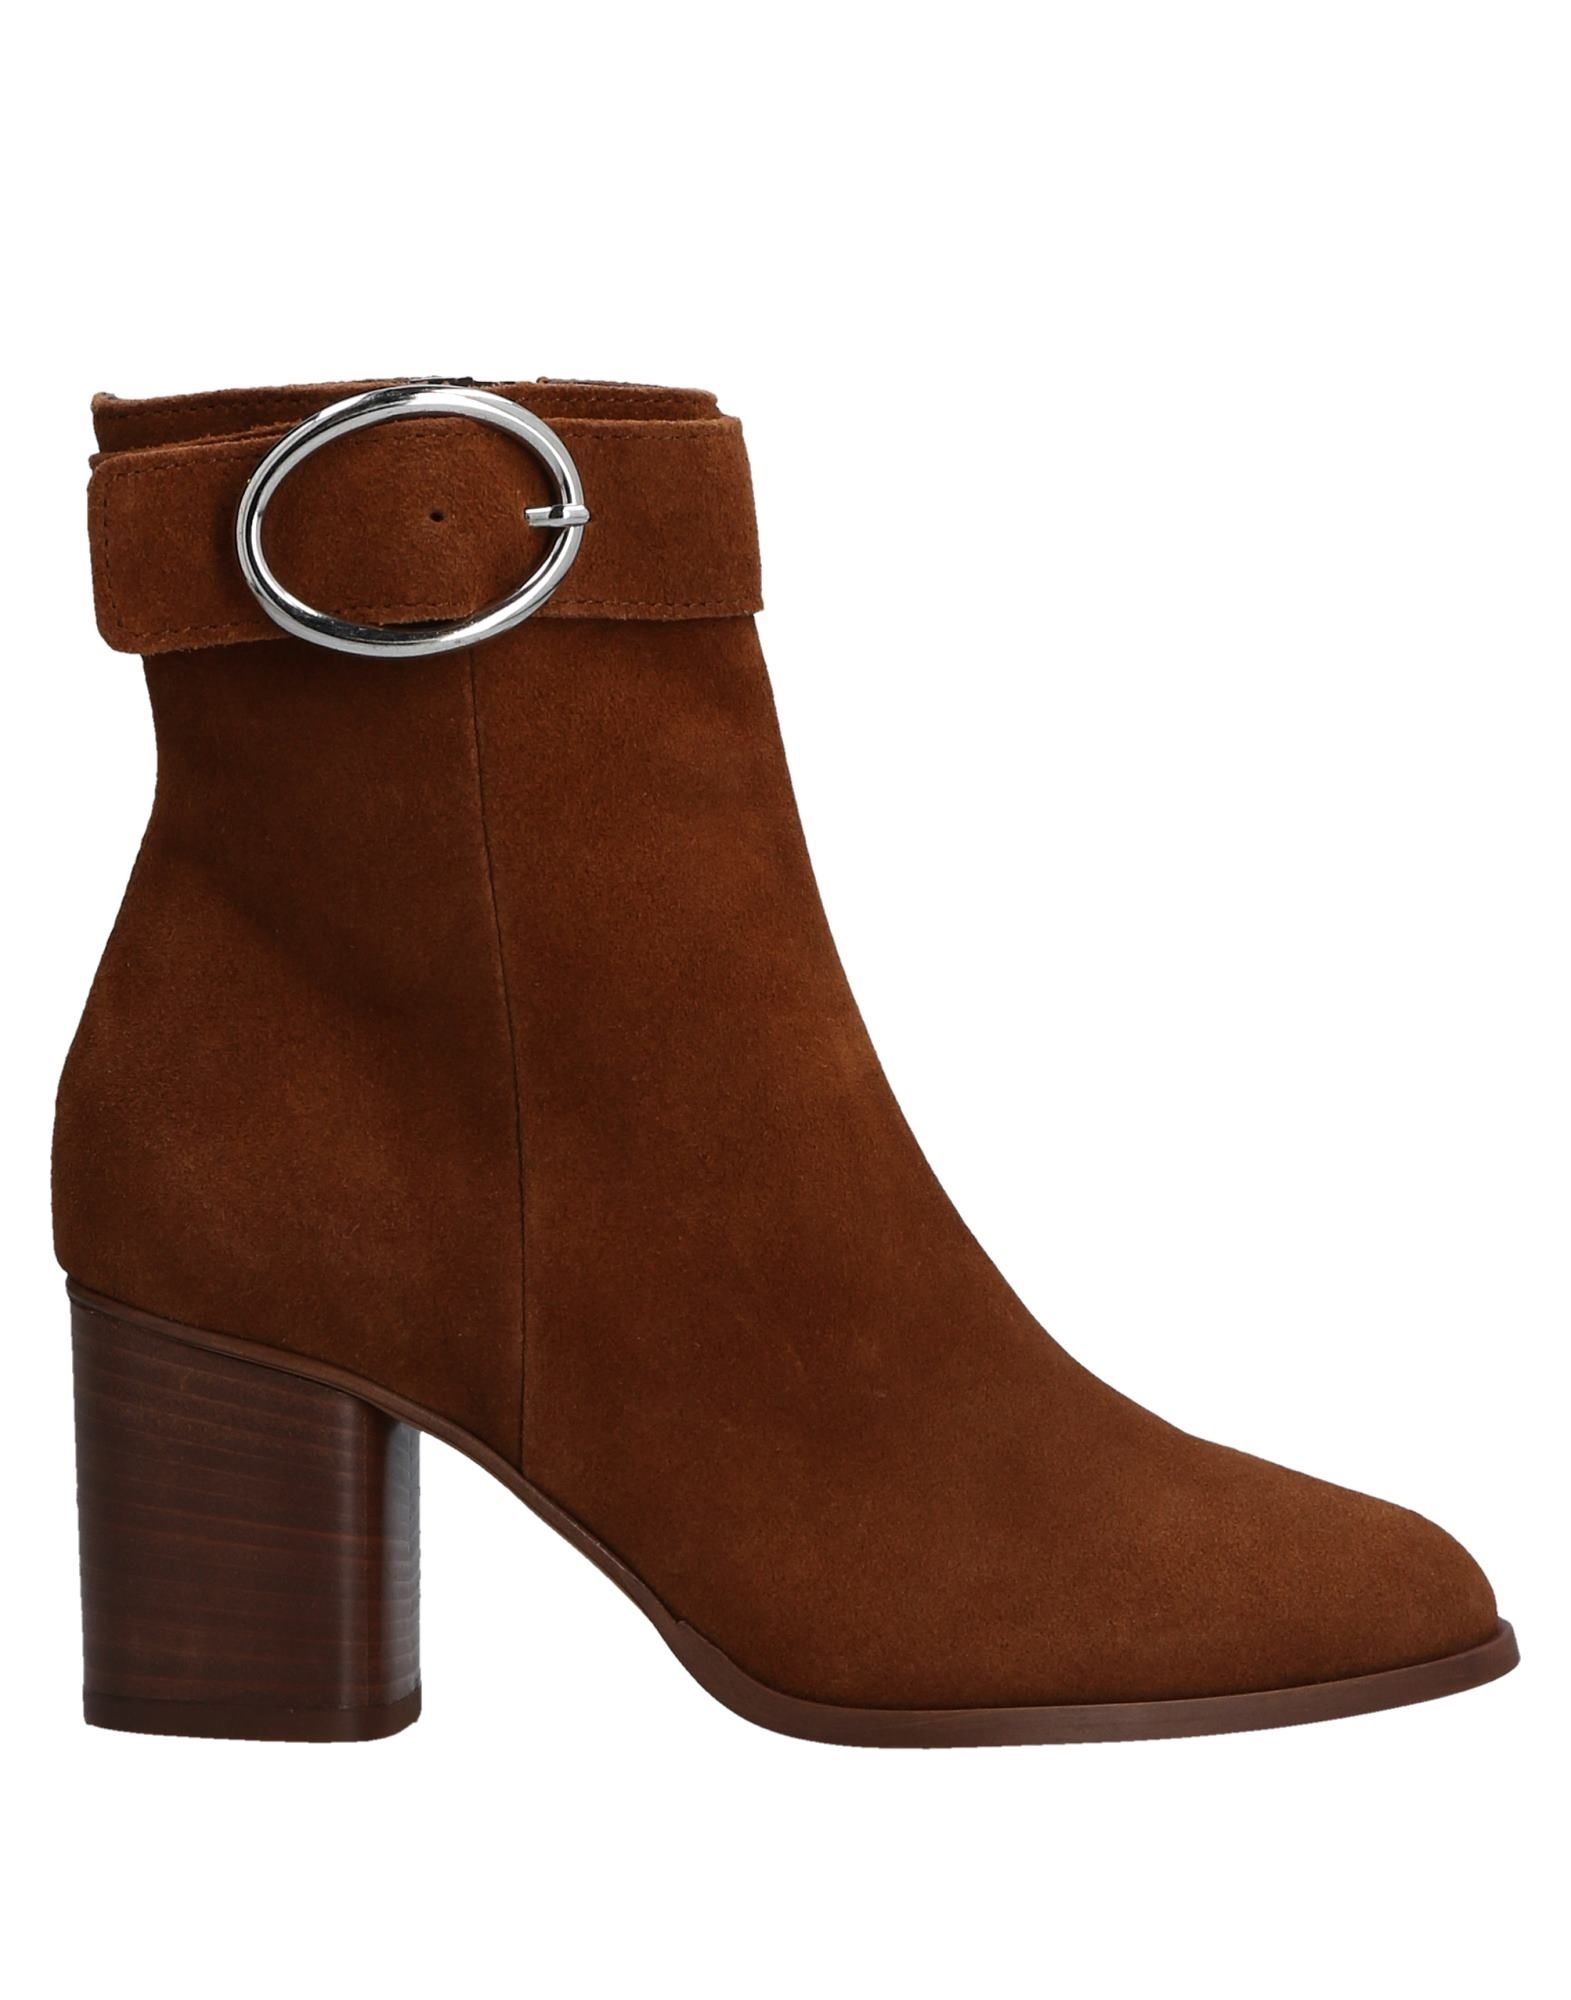 Bottine Gusto Femme - Bottines Gusto Noir Chaussures casual sauvages